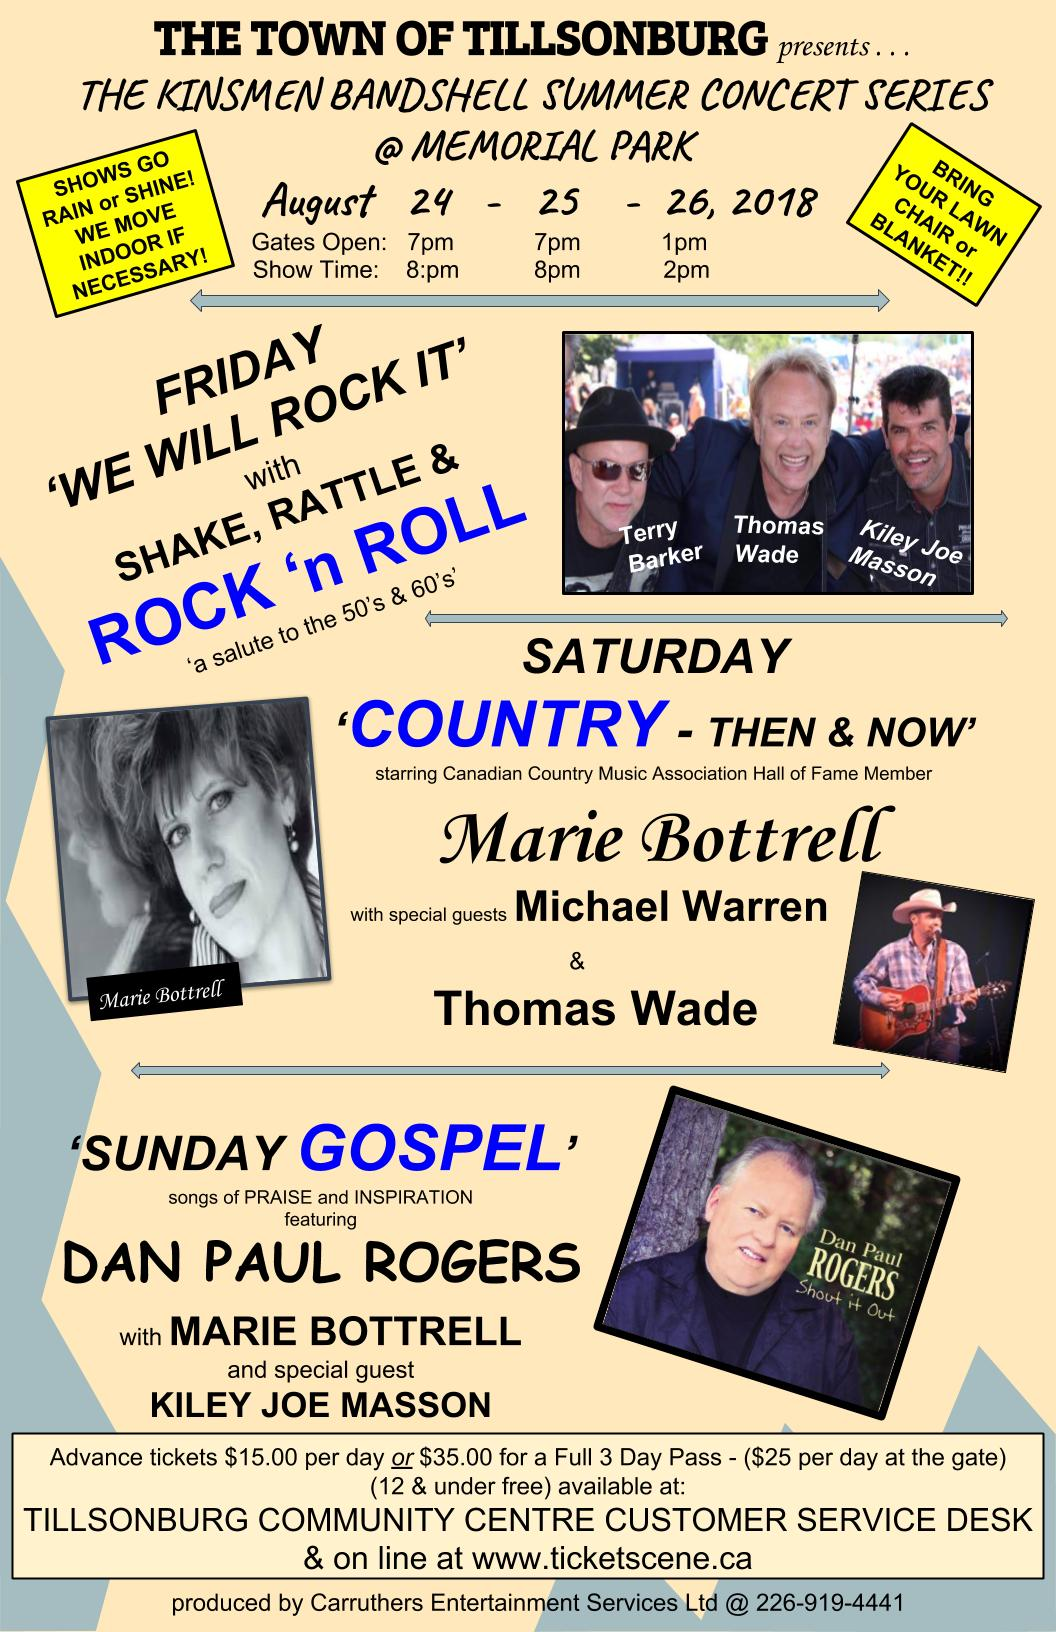 Weekend Pass (Tillsonburg Summer Concert Series)